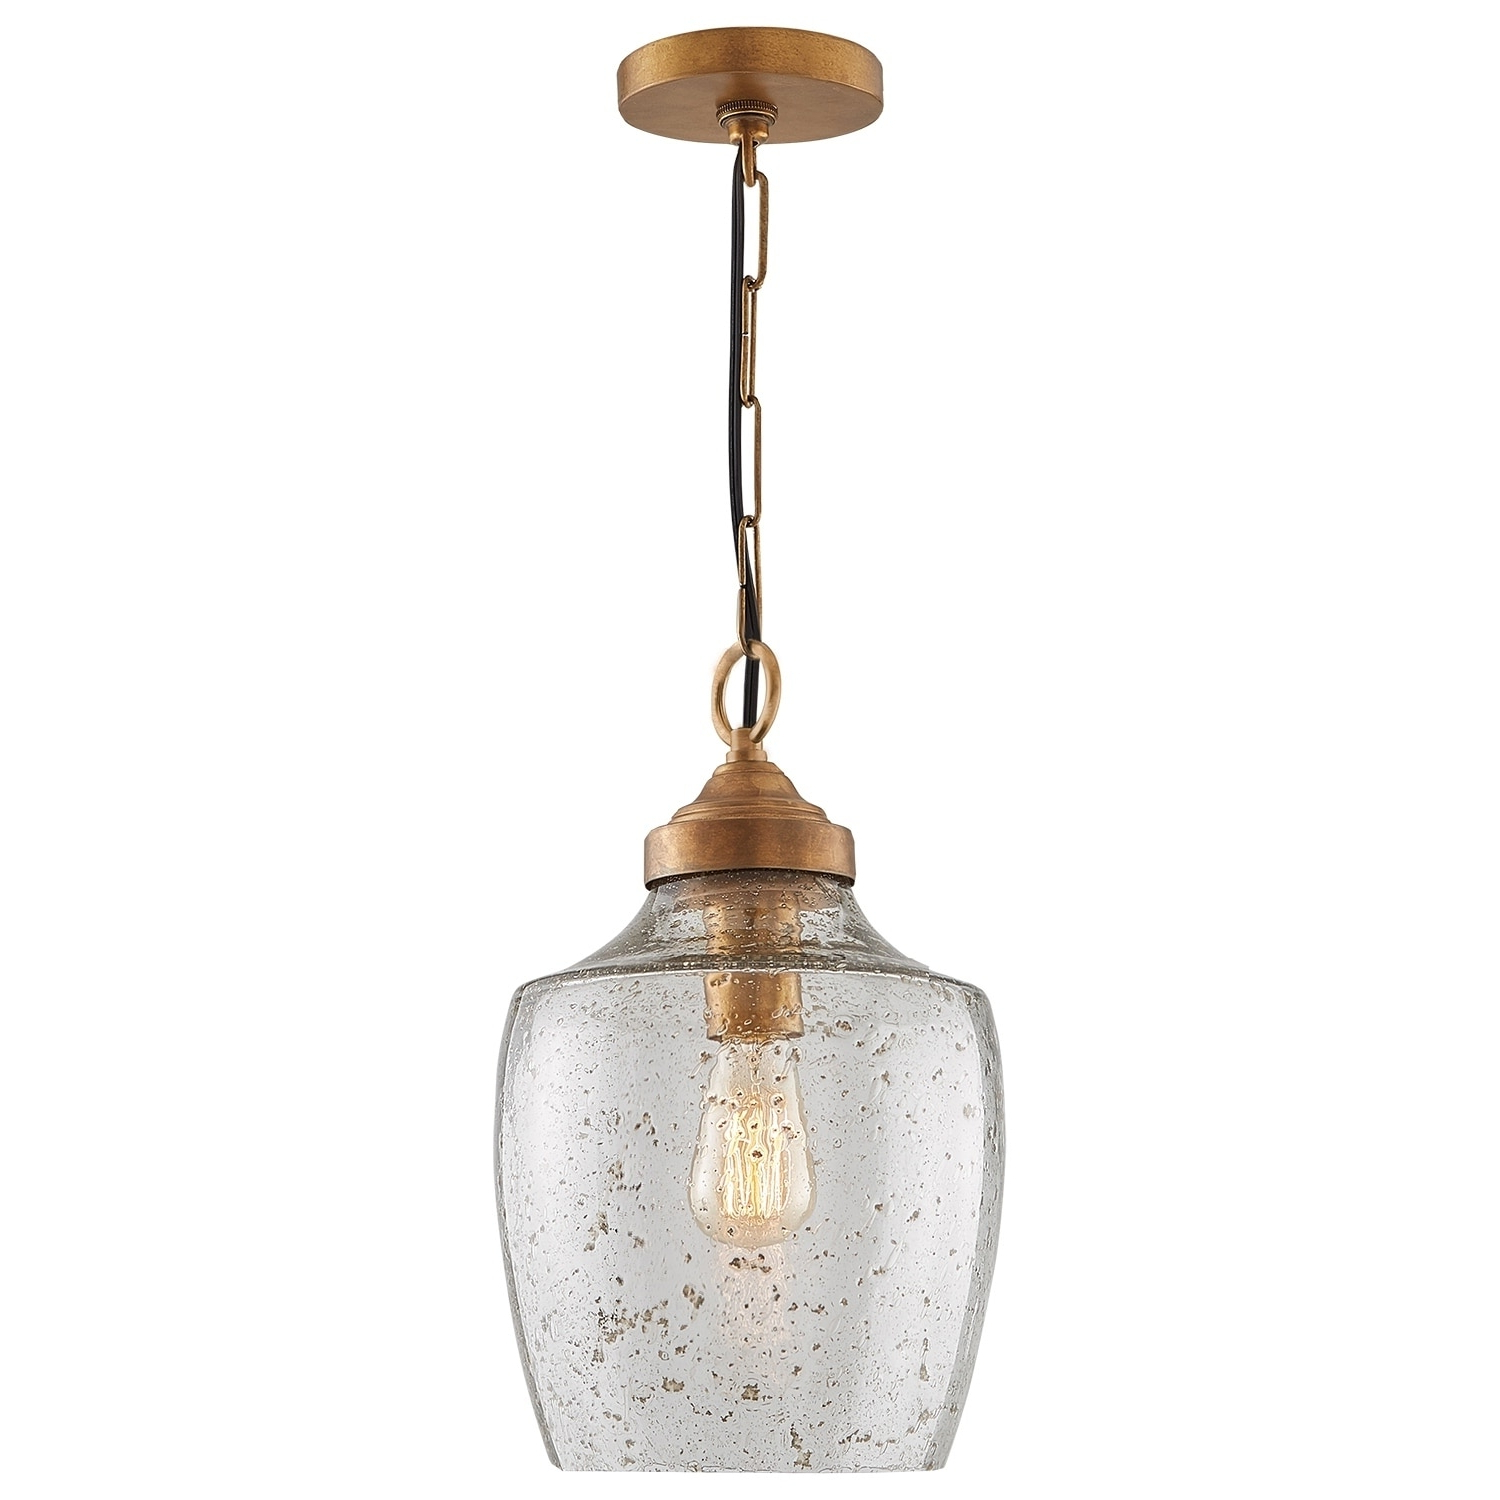 Carey 1 Light Single Bell Pendants With Regard To Favorite Transitional 1 Light Glass Pendant With Rose Brass – Rose (View 9 of 25)